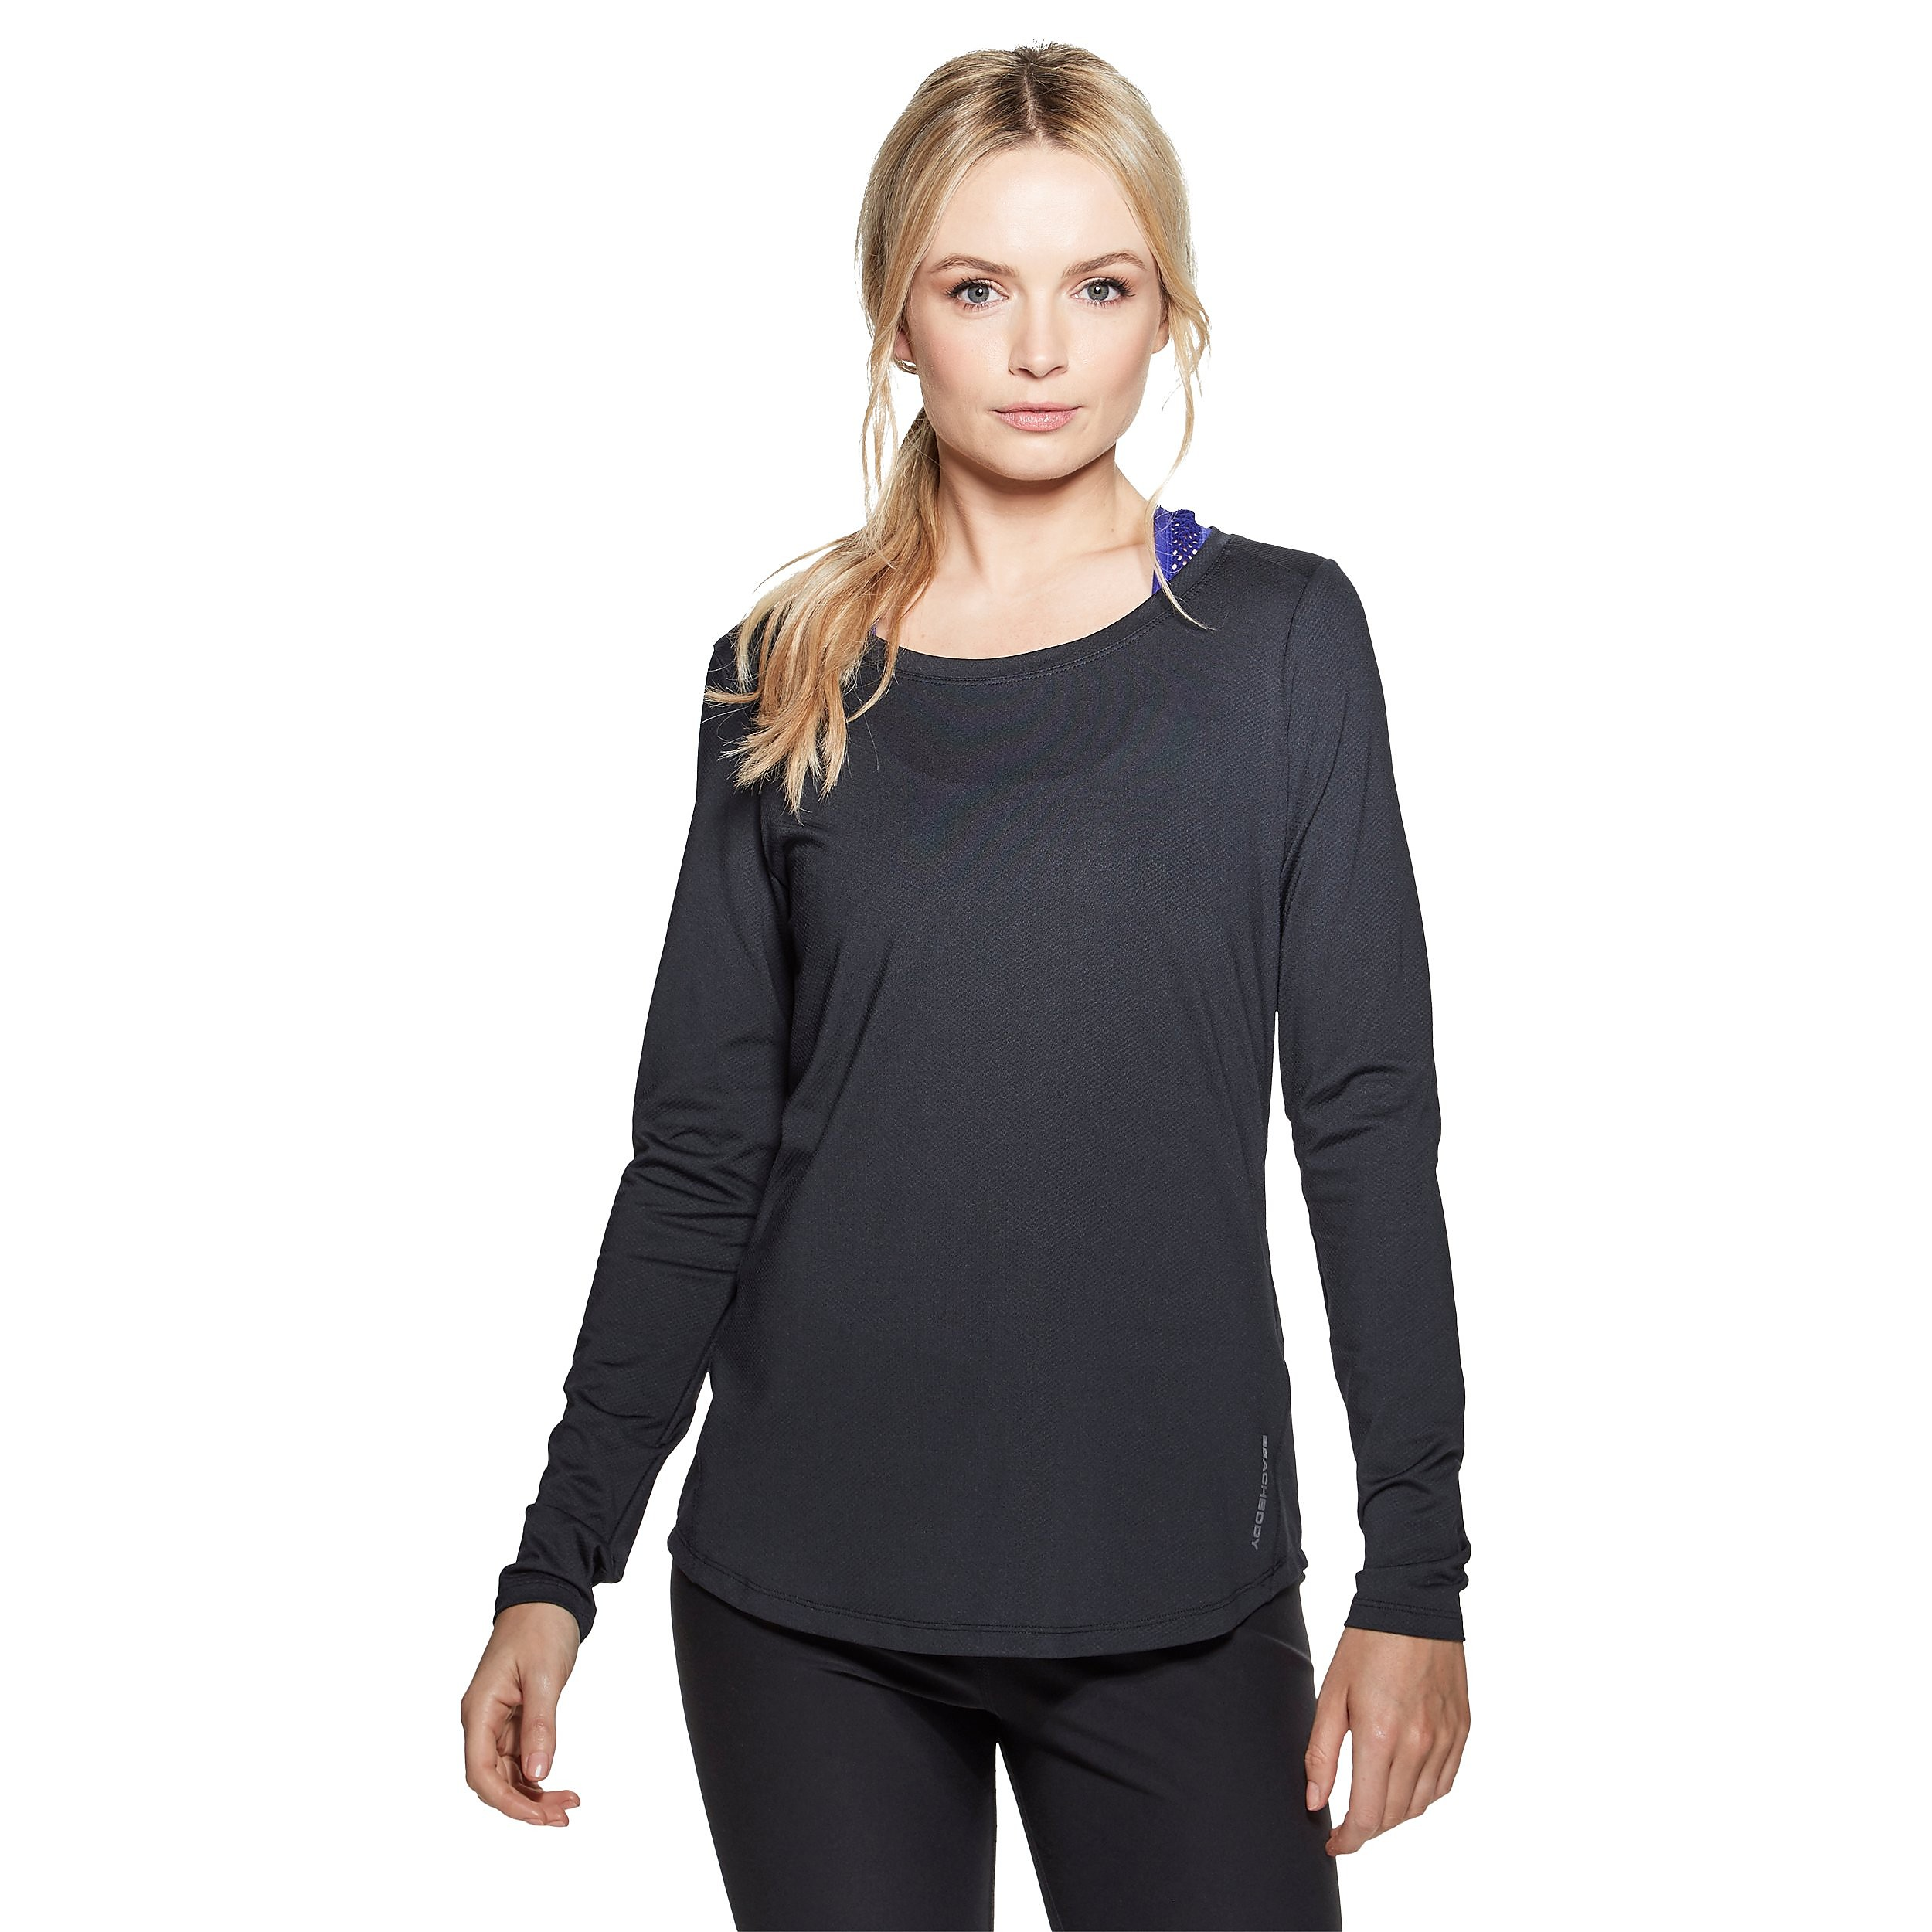 Beachbody Women's Element Long Sleeve Top